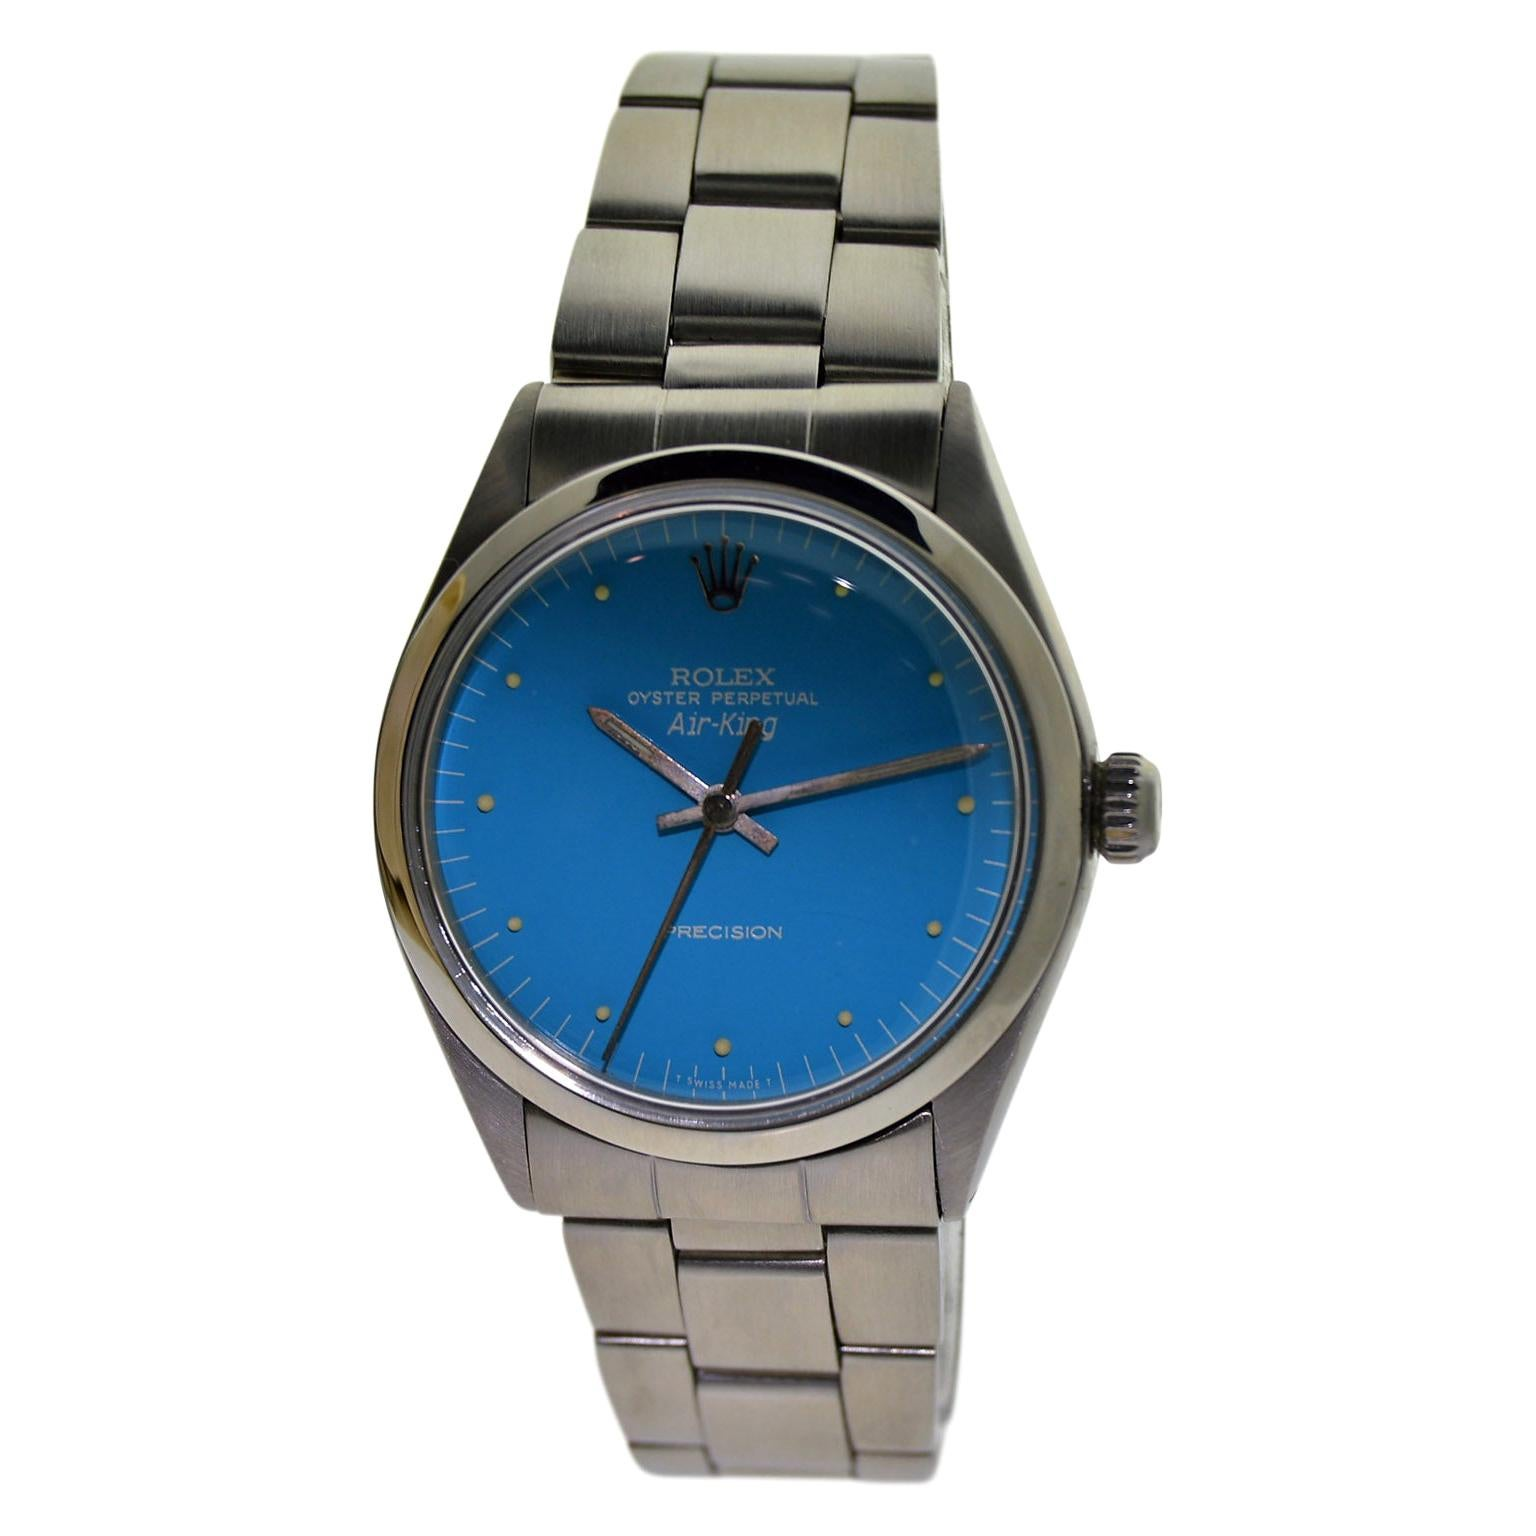 Rolex Stainless Steel Oyster Perpetual Air King Custom Powder Blue Dial, 1970's